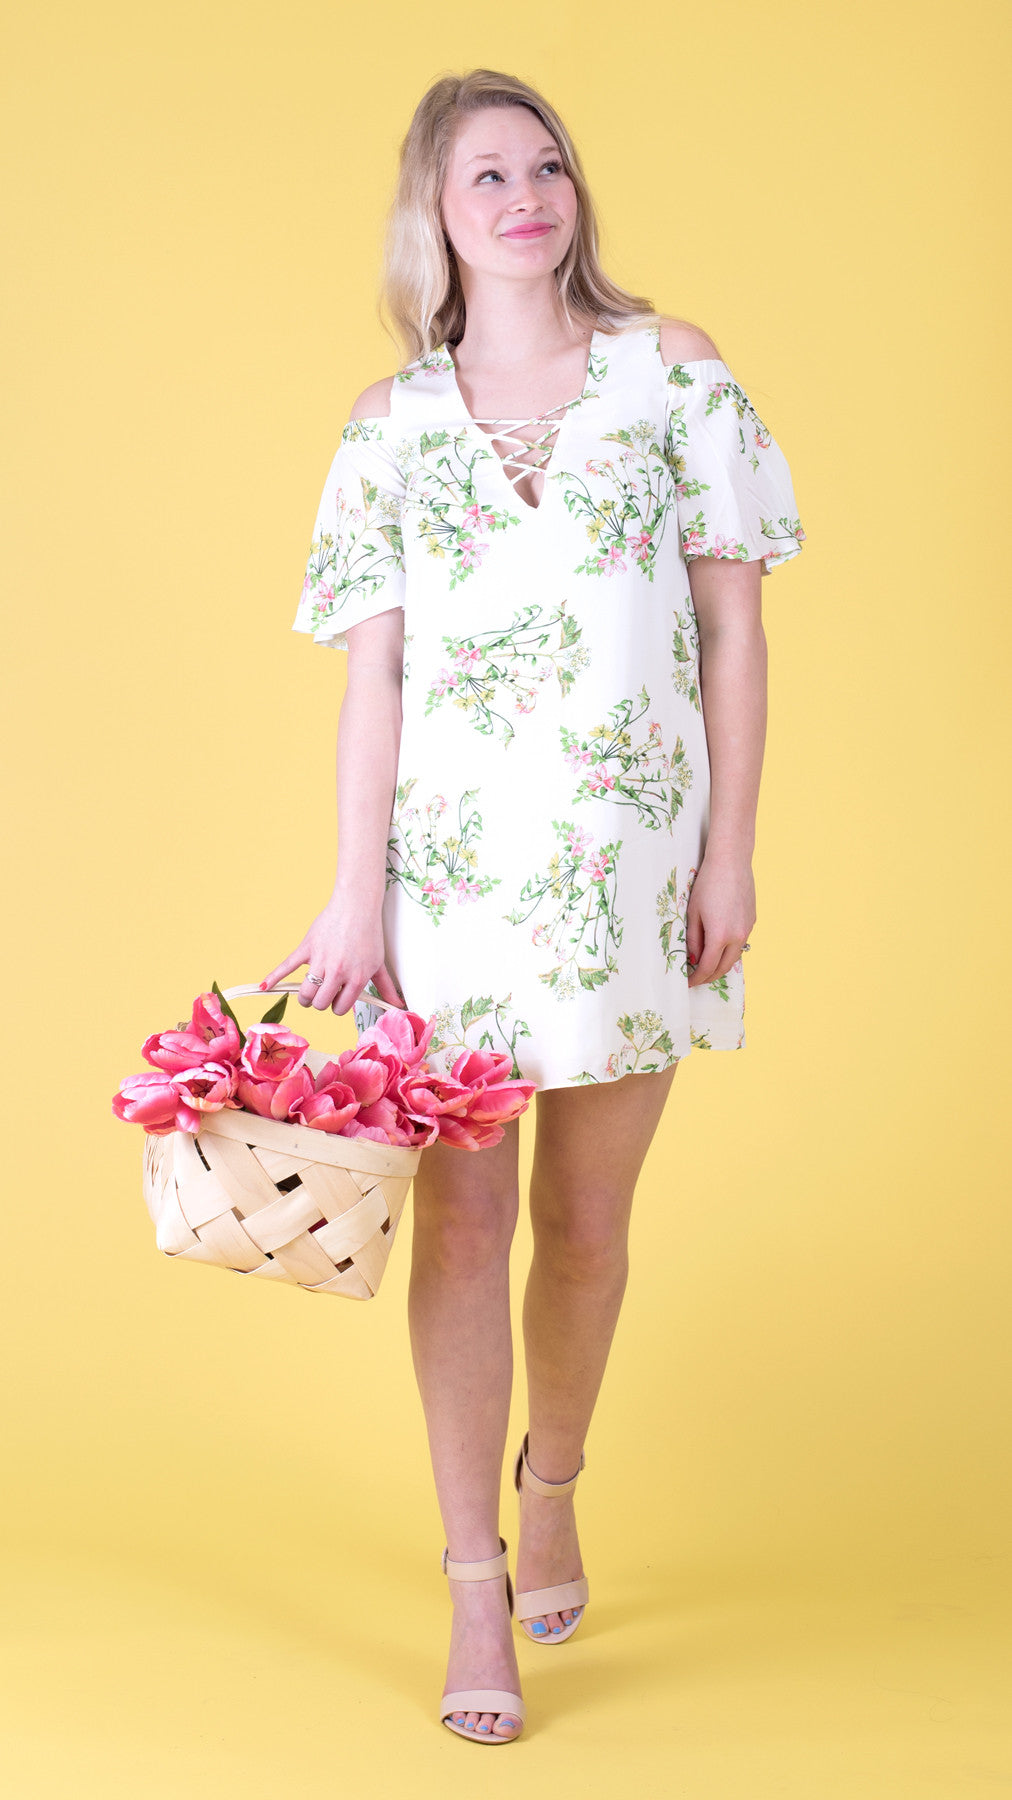 floral dress with cold shoulder and flutter sleeves, pastel flowers on a white background